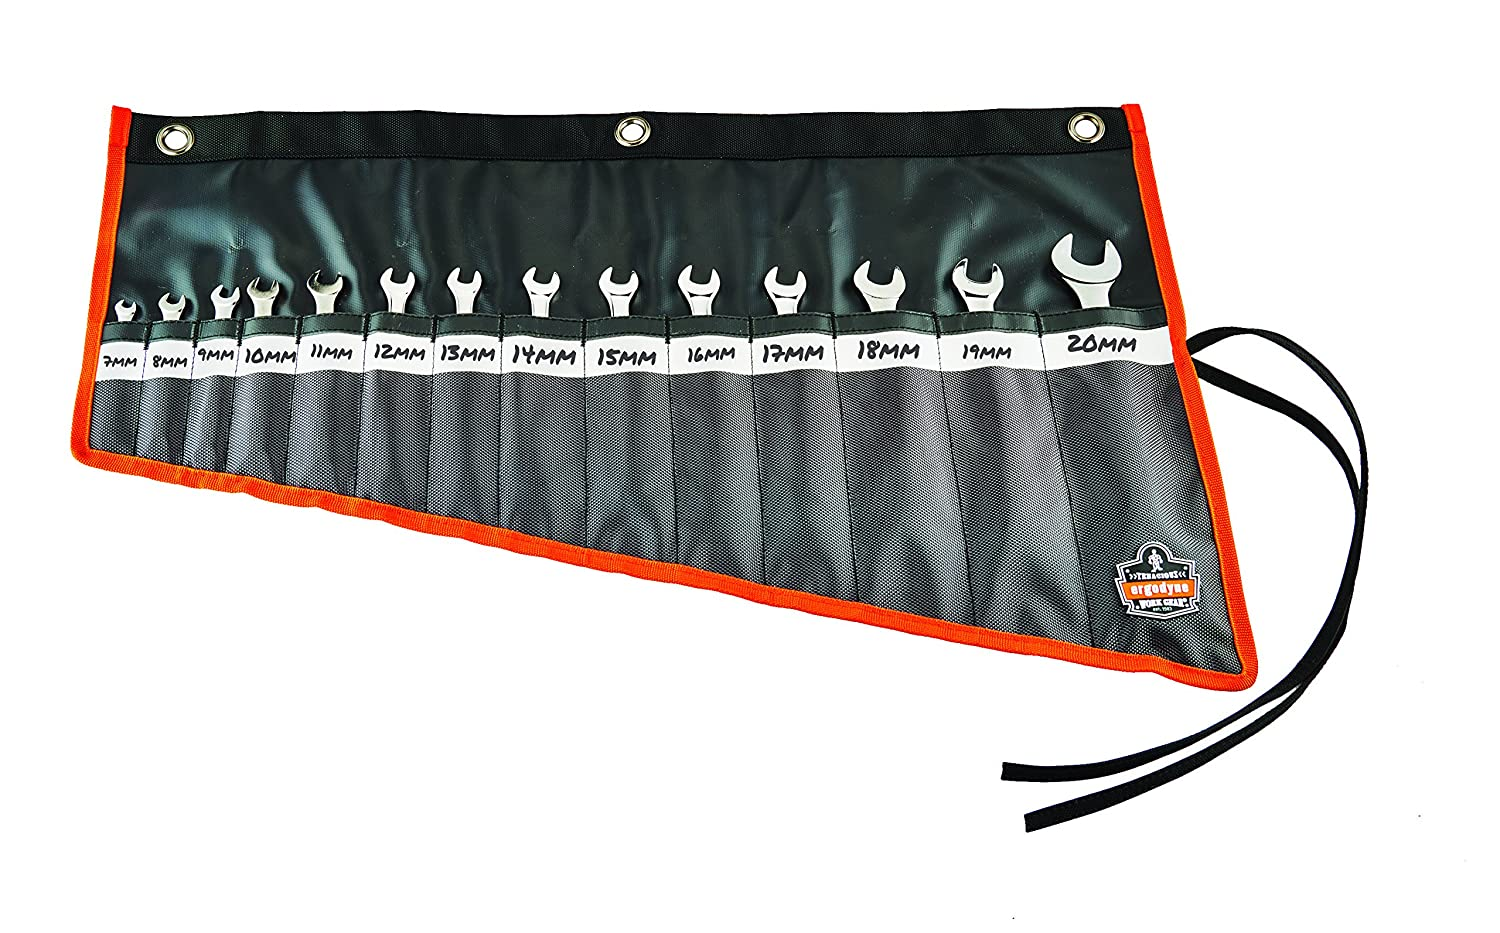 Ergodyne Arsenal 5873 Wrench Roll-Up Pouch Black 14-Pockets Tall